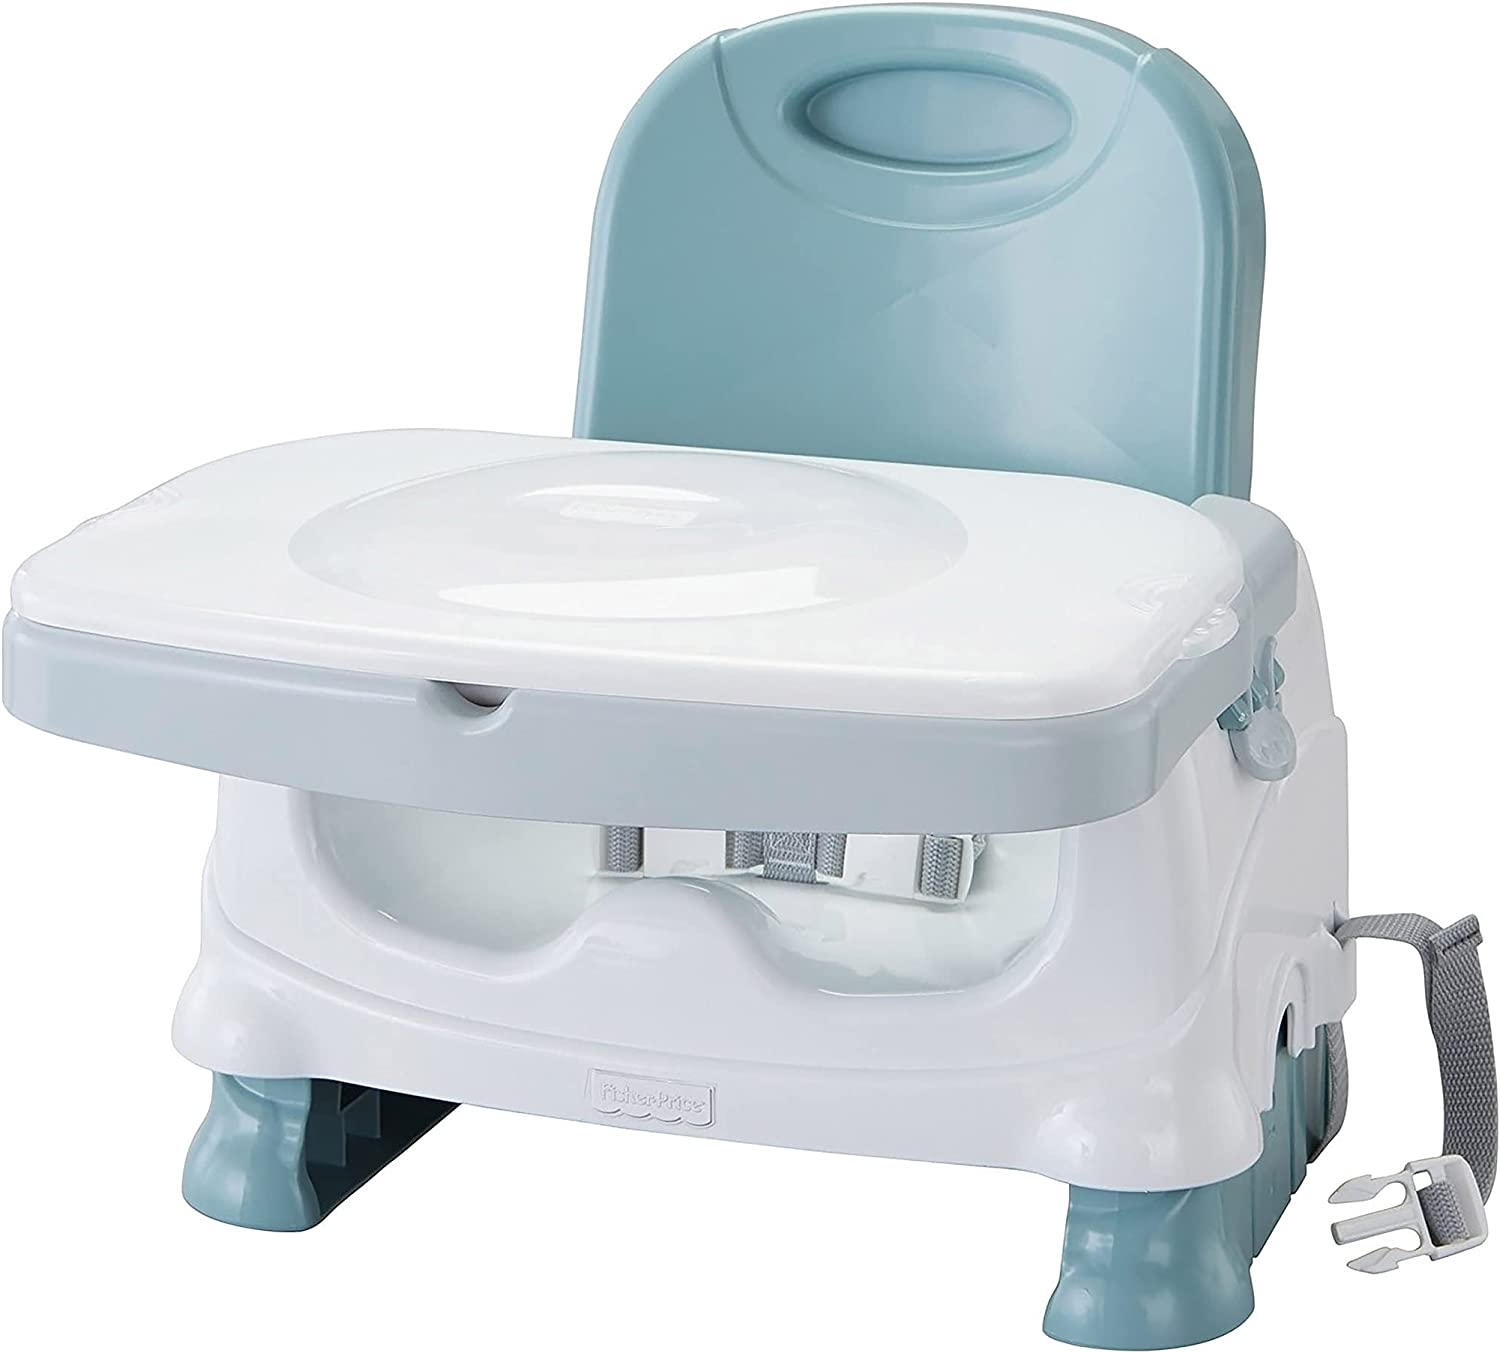 half Fisher-Price Healthy Care 2021 spring and summer new Booster Deluxe Seat